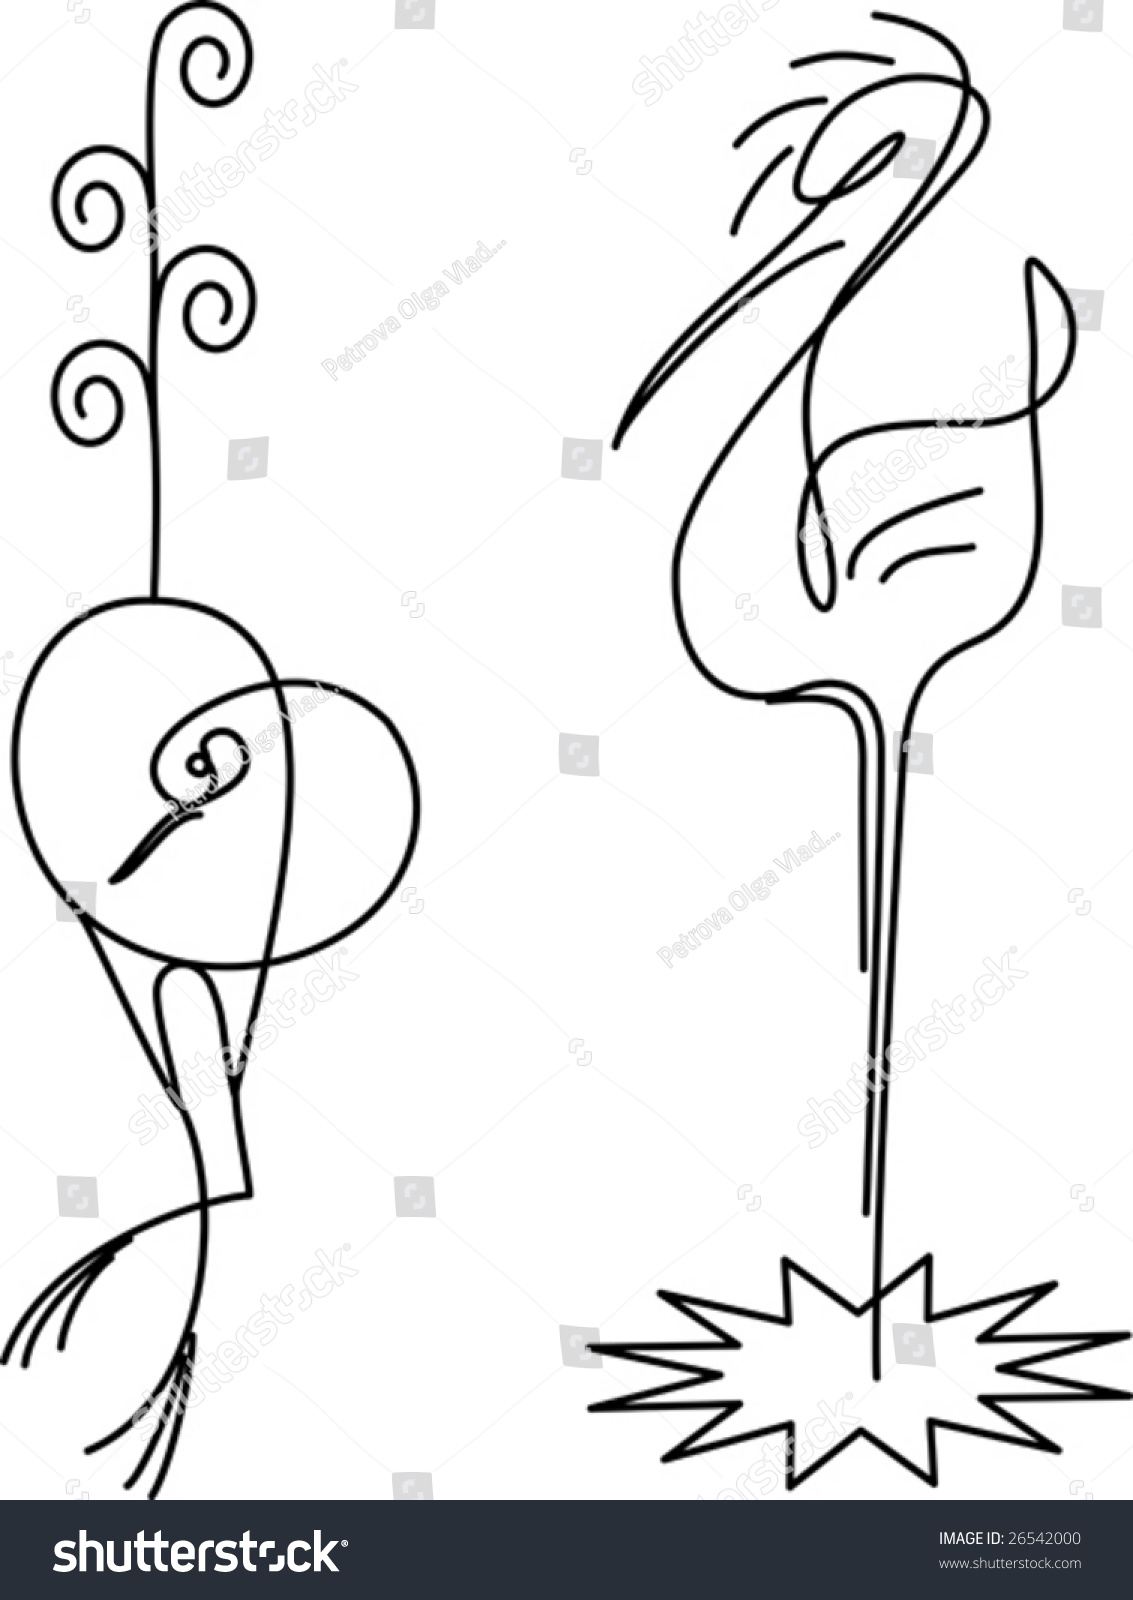 two birds crane heron stylization drawn stock vector 26542000